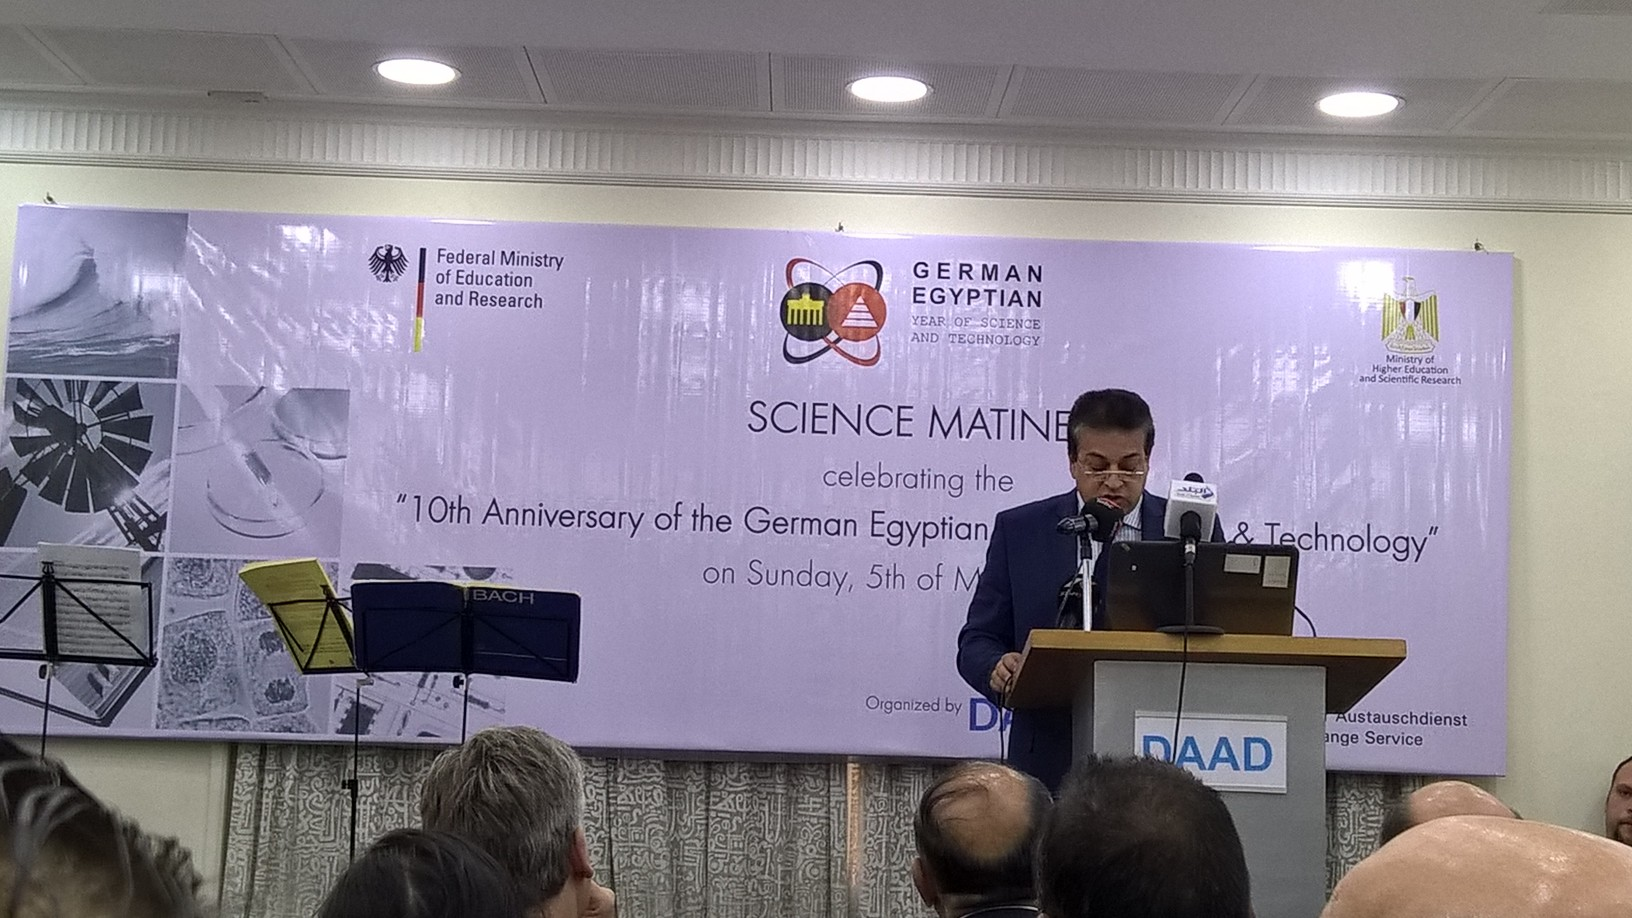 the 10th anniversary of the German Egyptian Year of Science & Technology